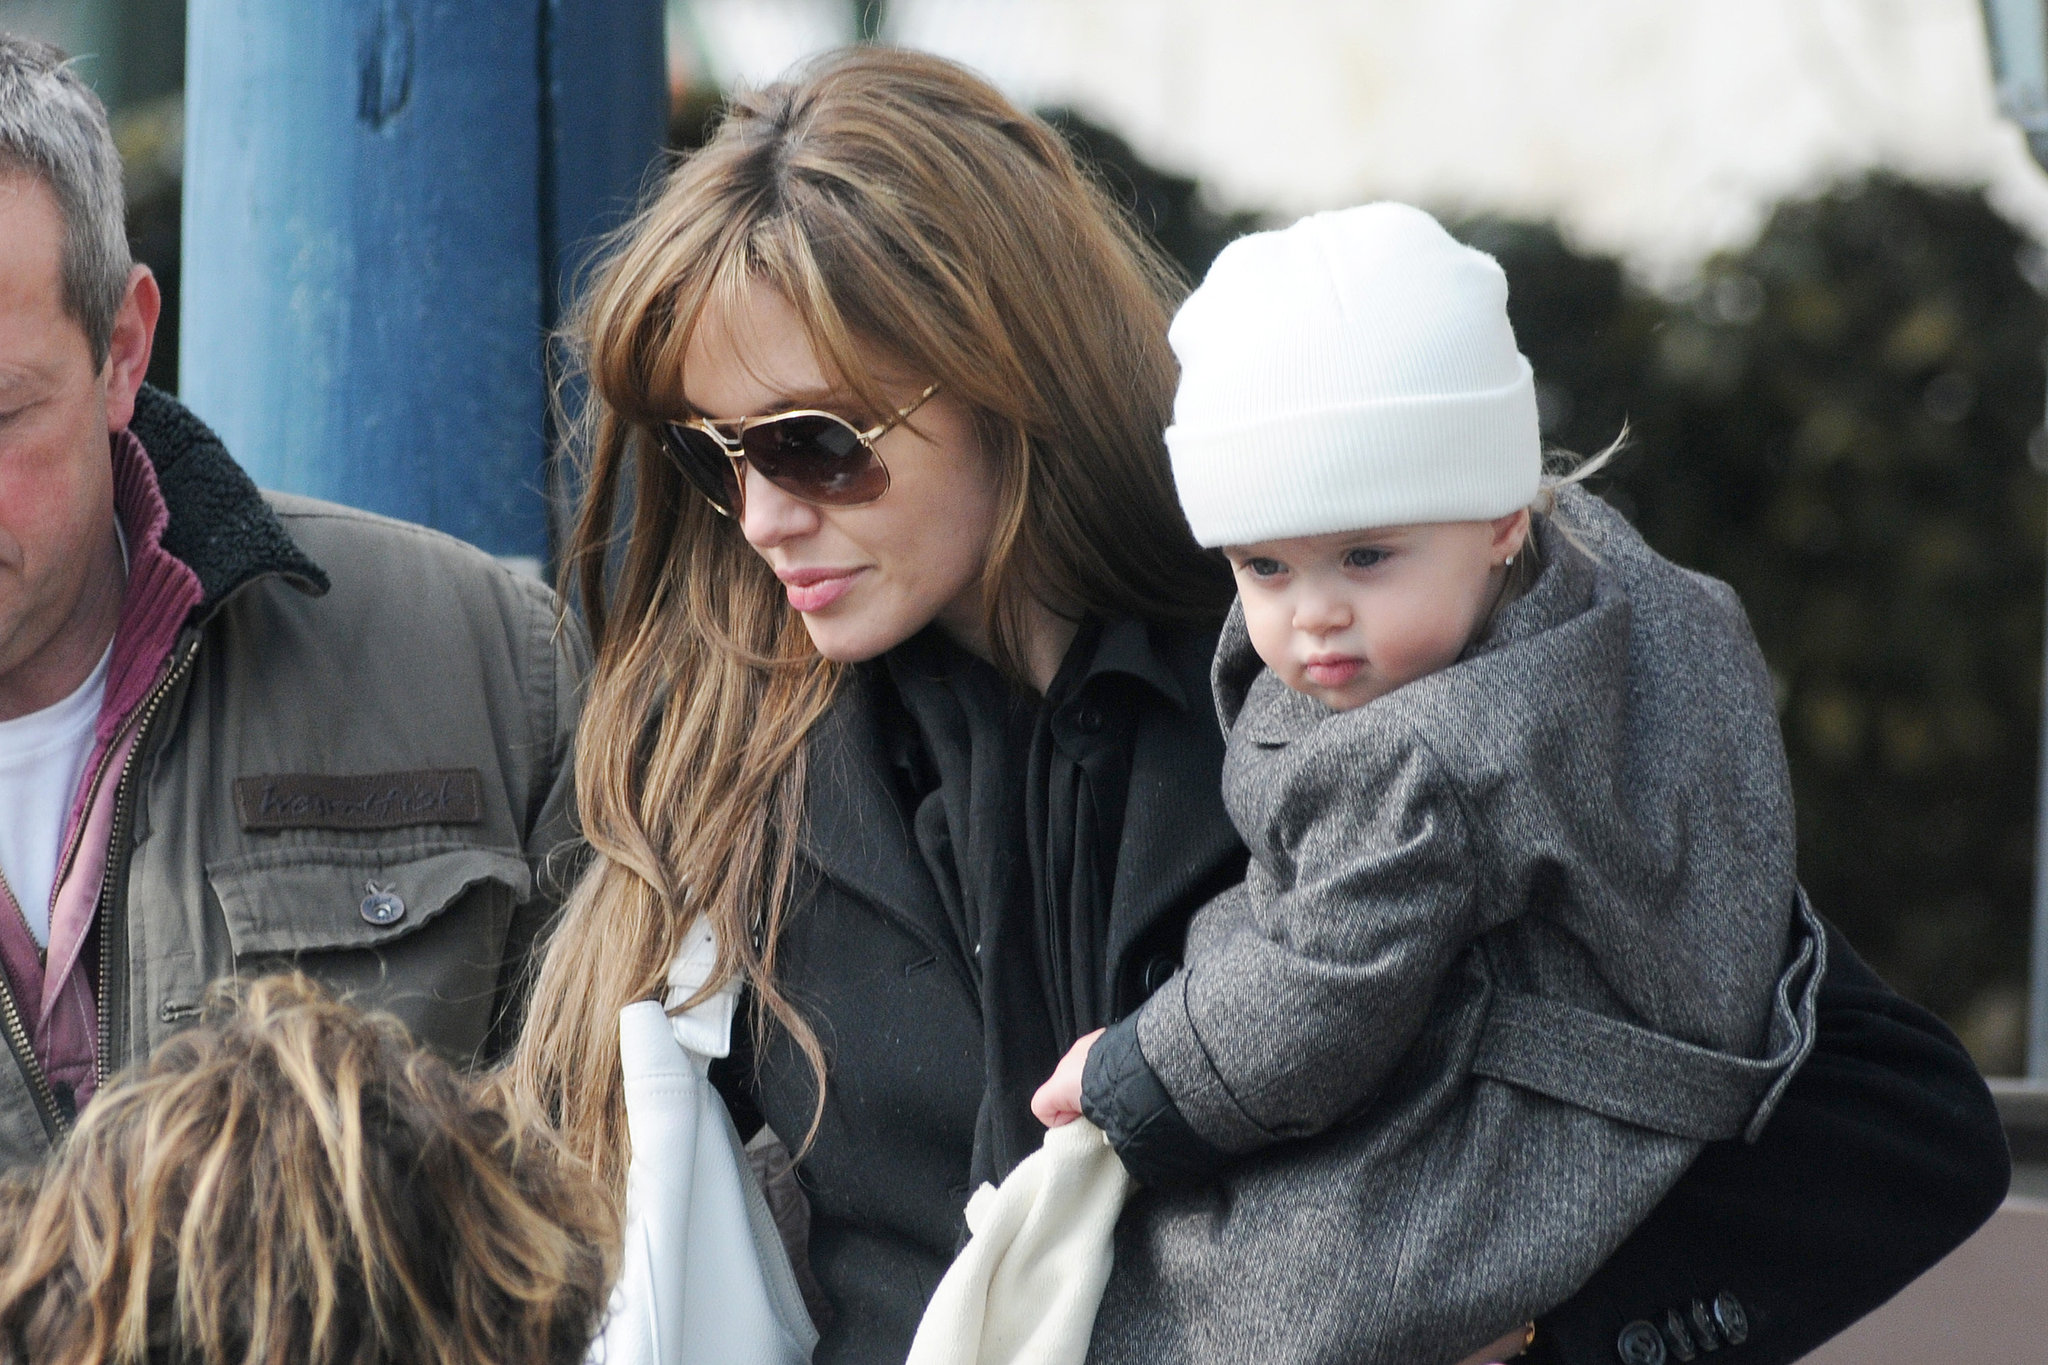 Vivienne Jolie-Pitt accessorized with earrings and a cap while out in Venice with Angelina Jolie in March 2010.